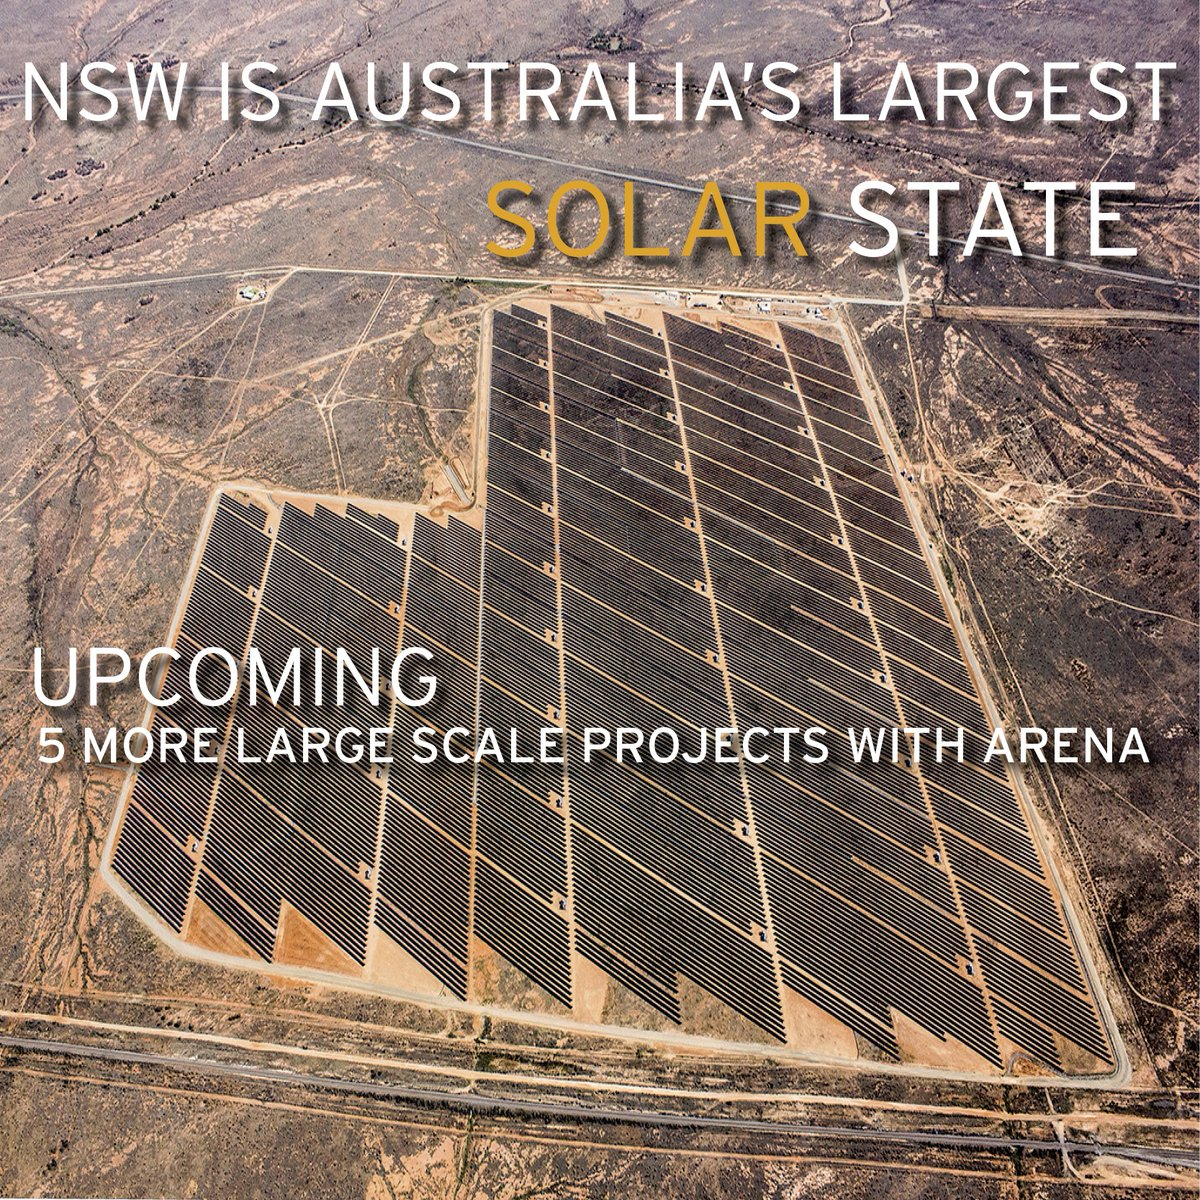 The first commitment will be a 13-year PPA signing for the 42.6MW solar farm at Manildra in regional New South Wales. Credit: ARENA